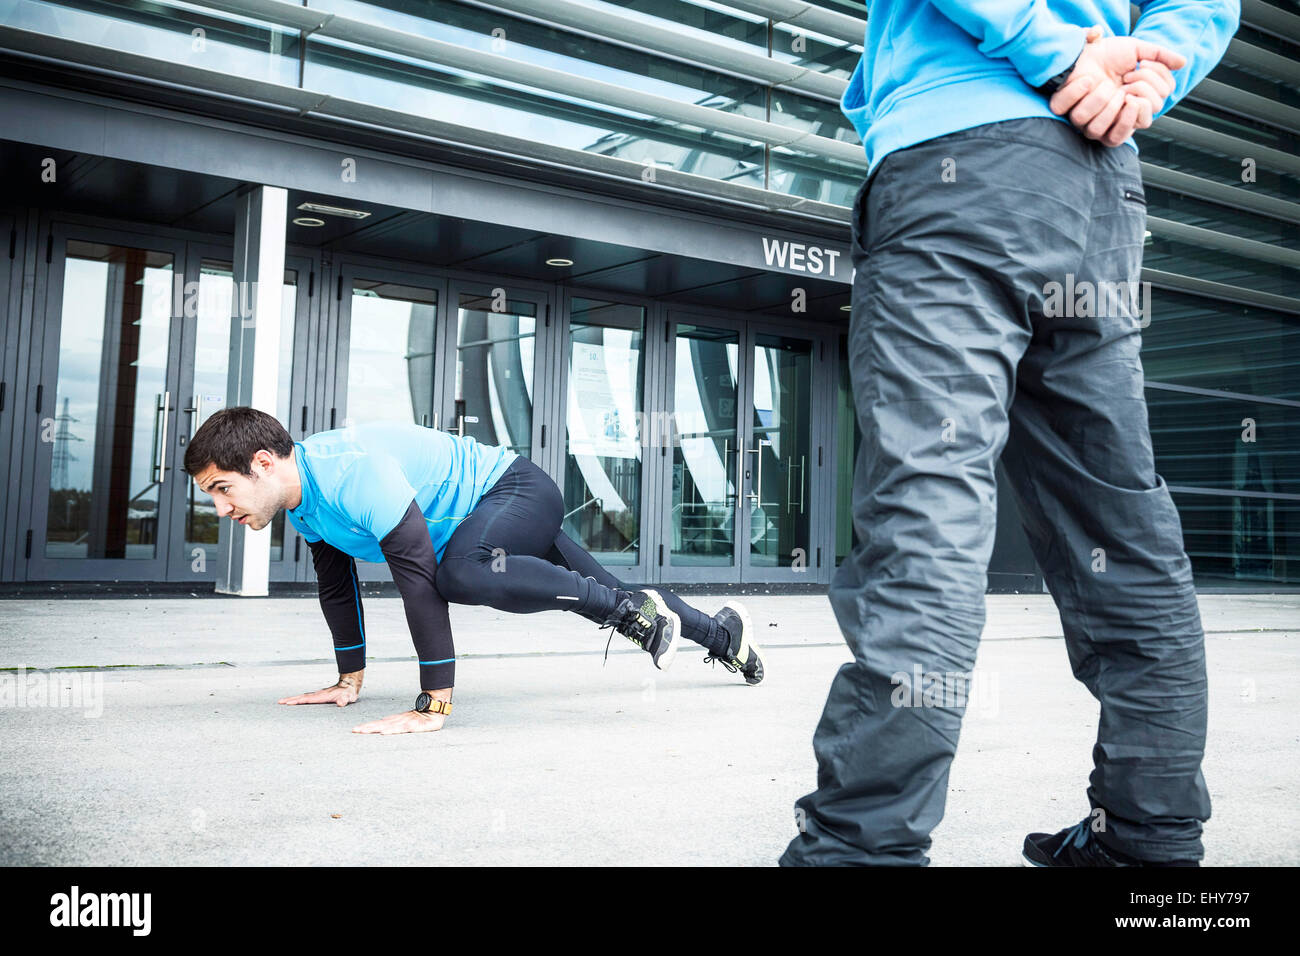 Male runners doing push-ups in city - Stock Image